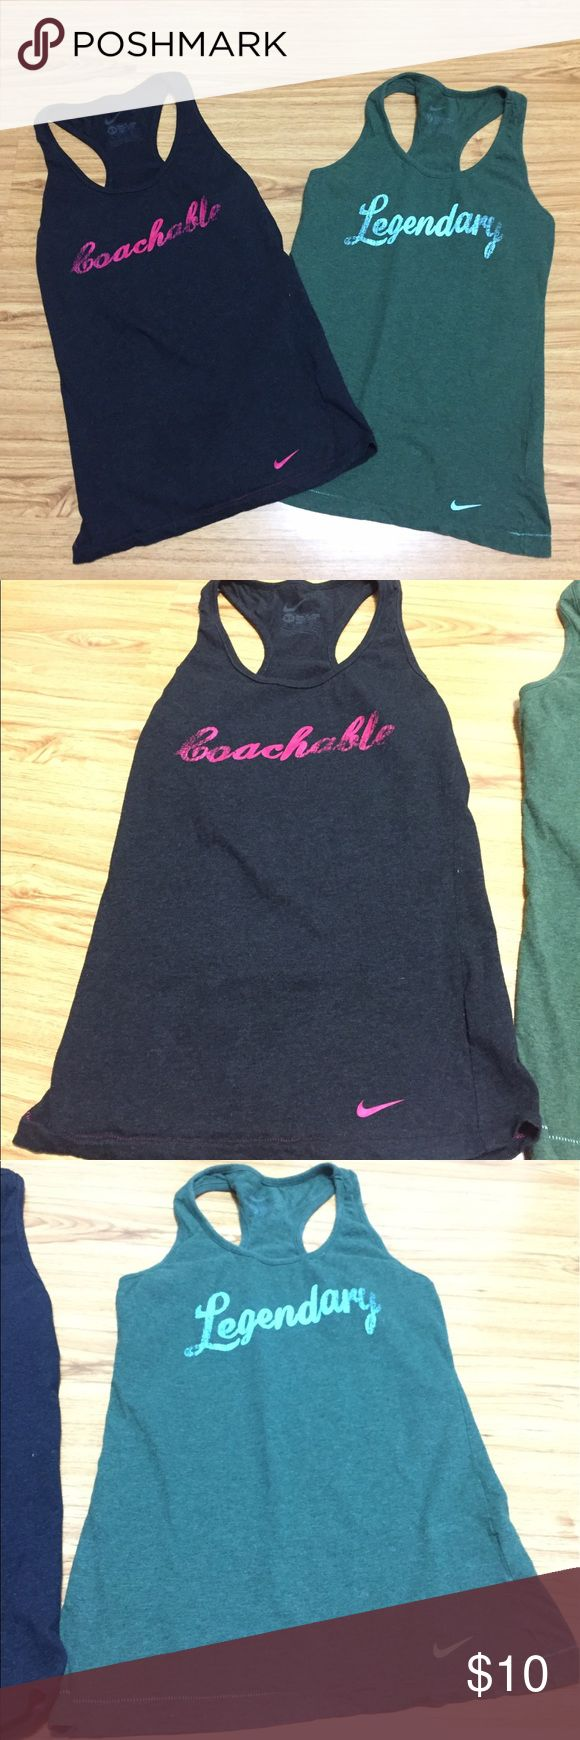 Nike Slim Fit Tank Tops - bundle of 2 Bundle of 2 - Women's Nike slim fit Tank Tops. Both are in size extra small. Colours: charcoal gray/pink stitches and olive green/ light blue stitches. Both are race back tanks. Great comfort tank tops for a great workout! Bundle for more discounts .... fast shipping!! Nike Tops Tank Tops